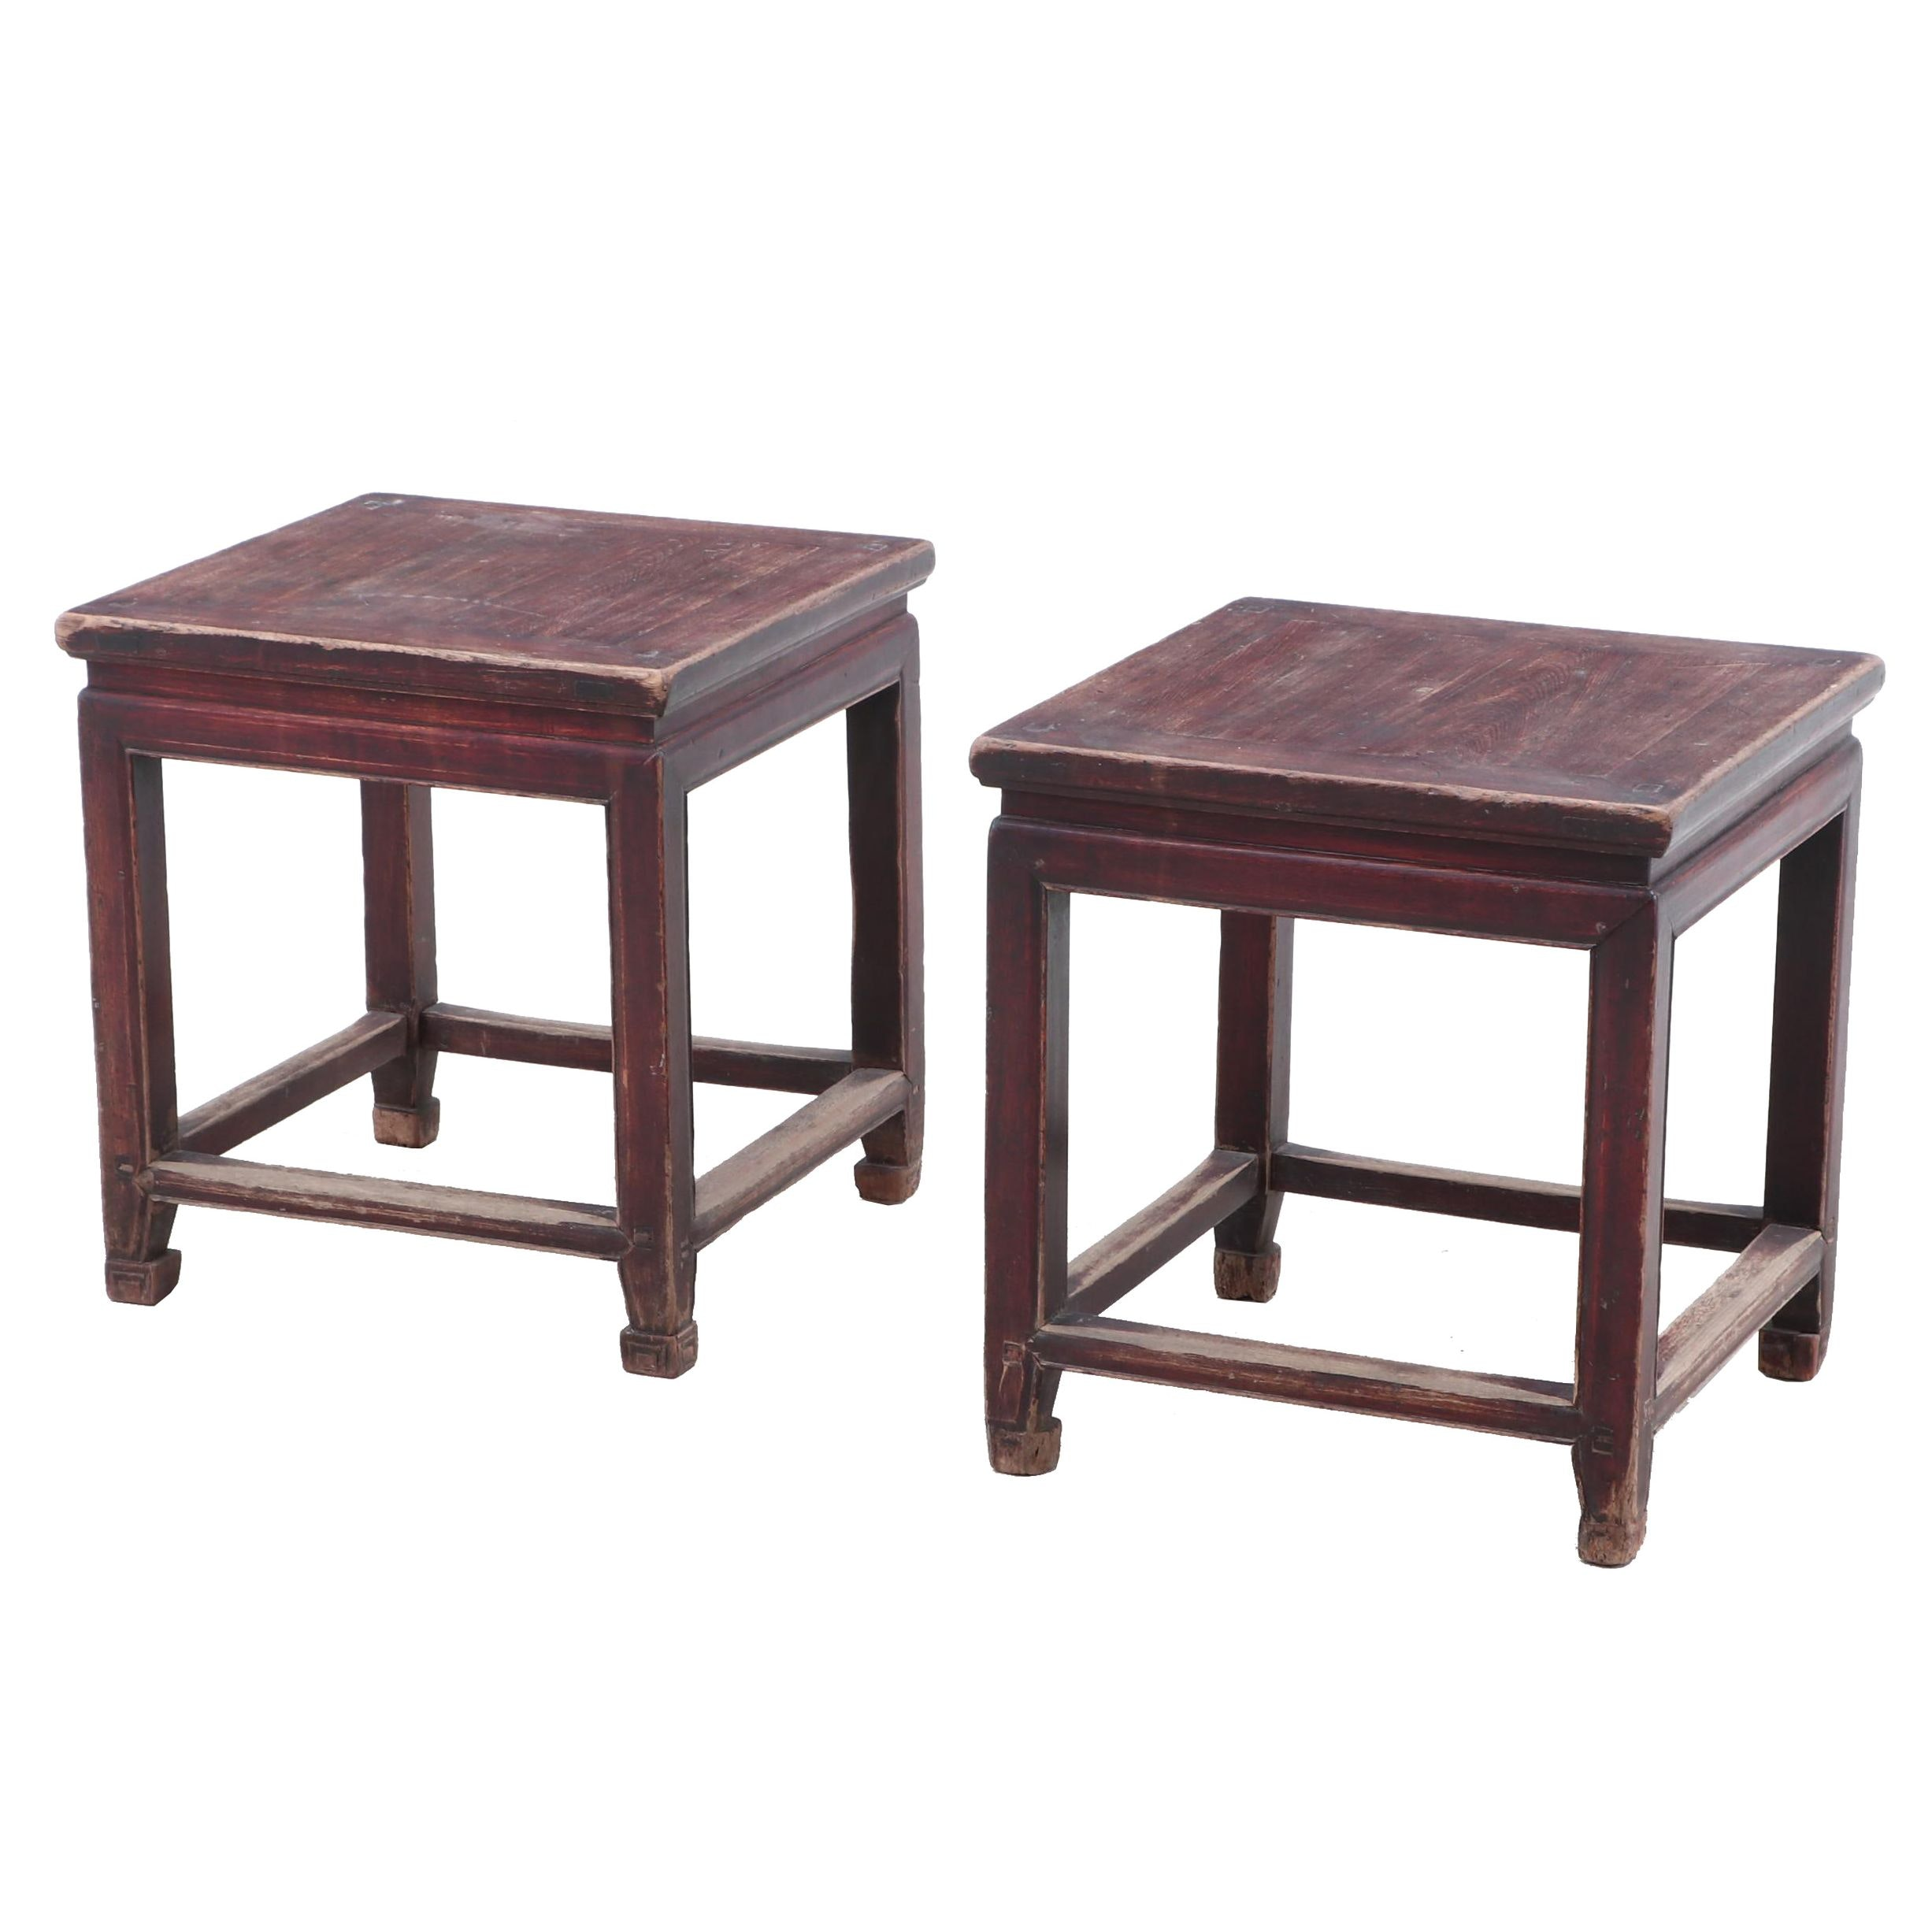 Pair of Antique Chinese Stools or Low Tables